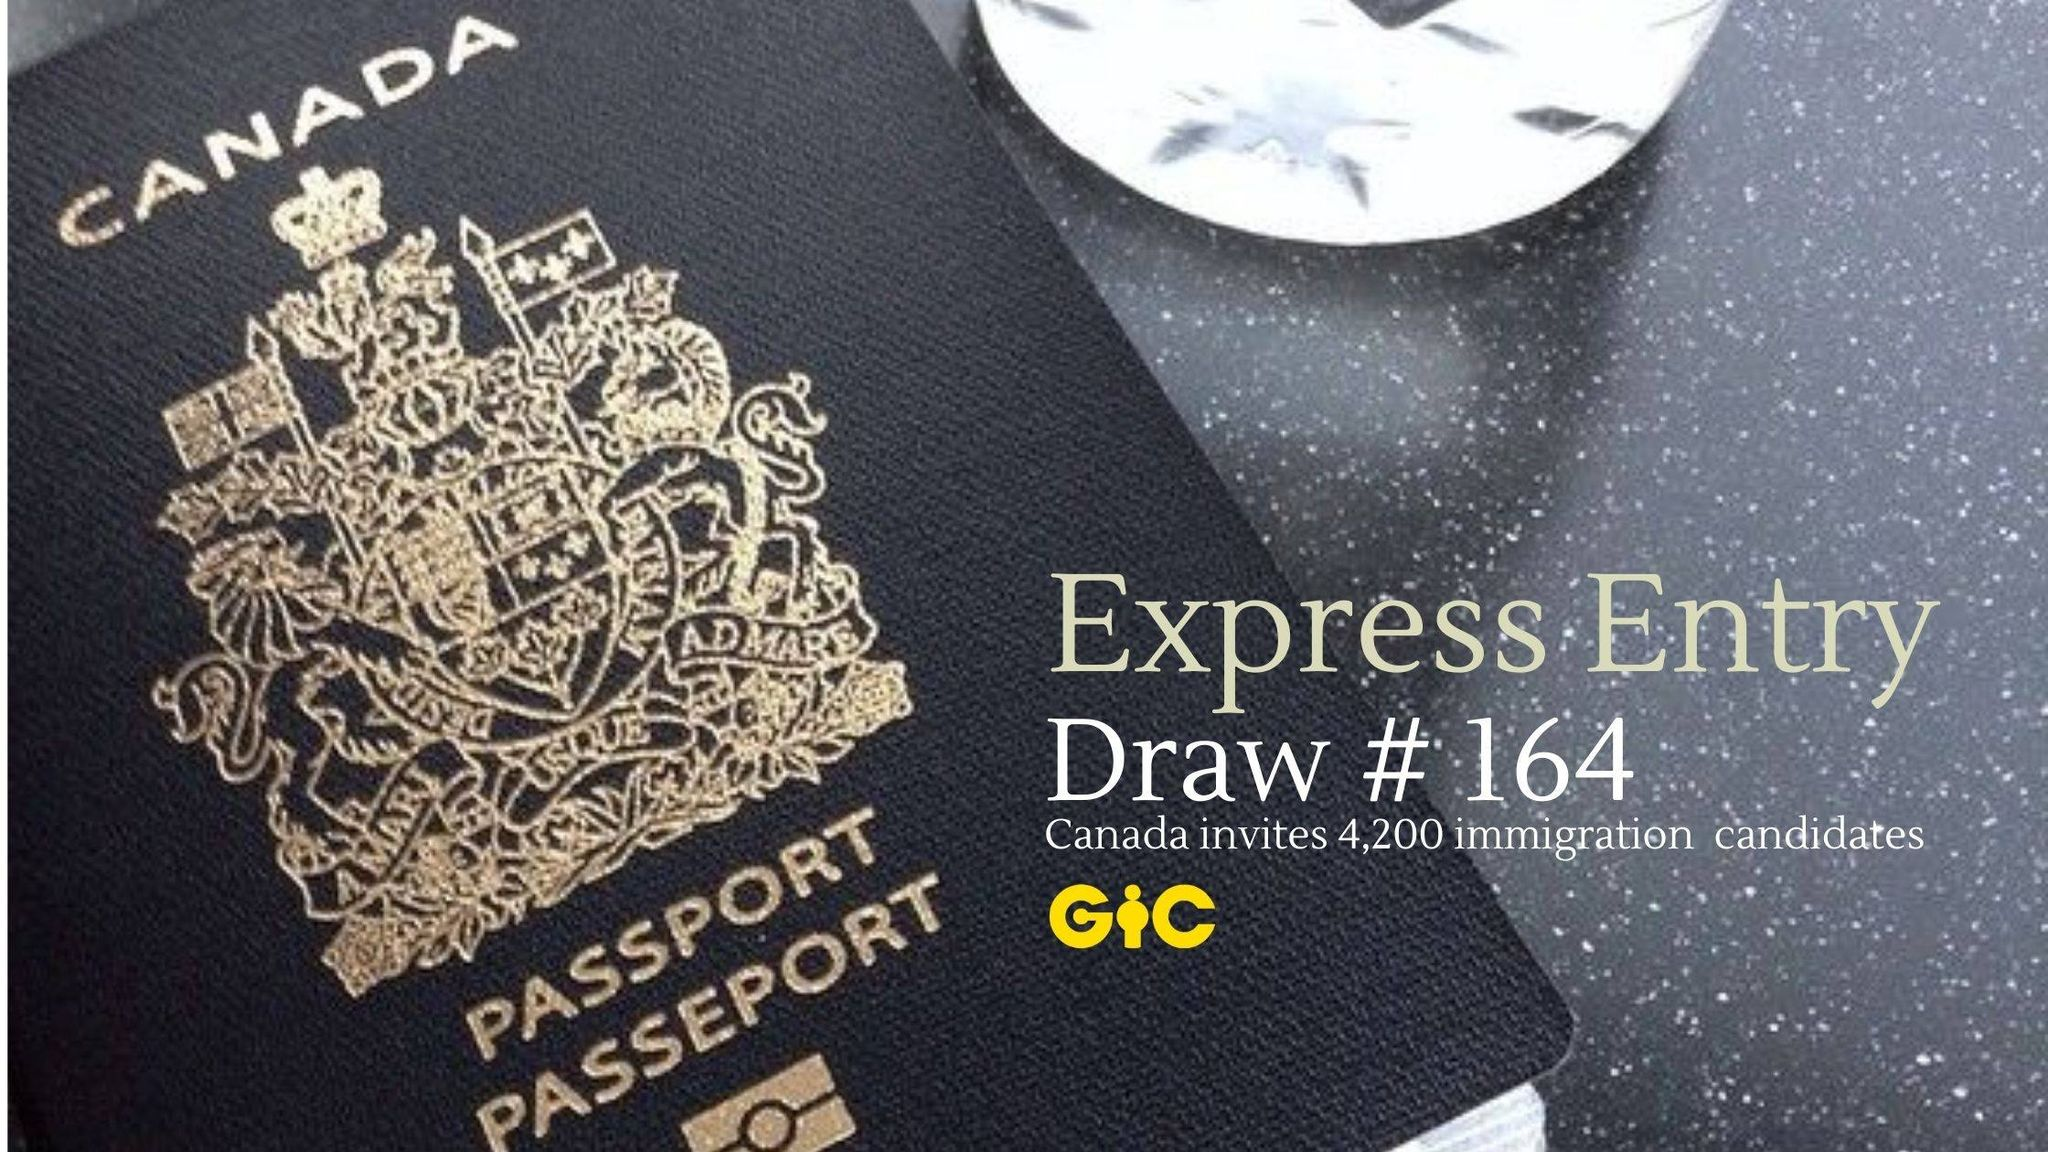 Express Entry Canada invites 4,200 immigration candidates